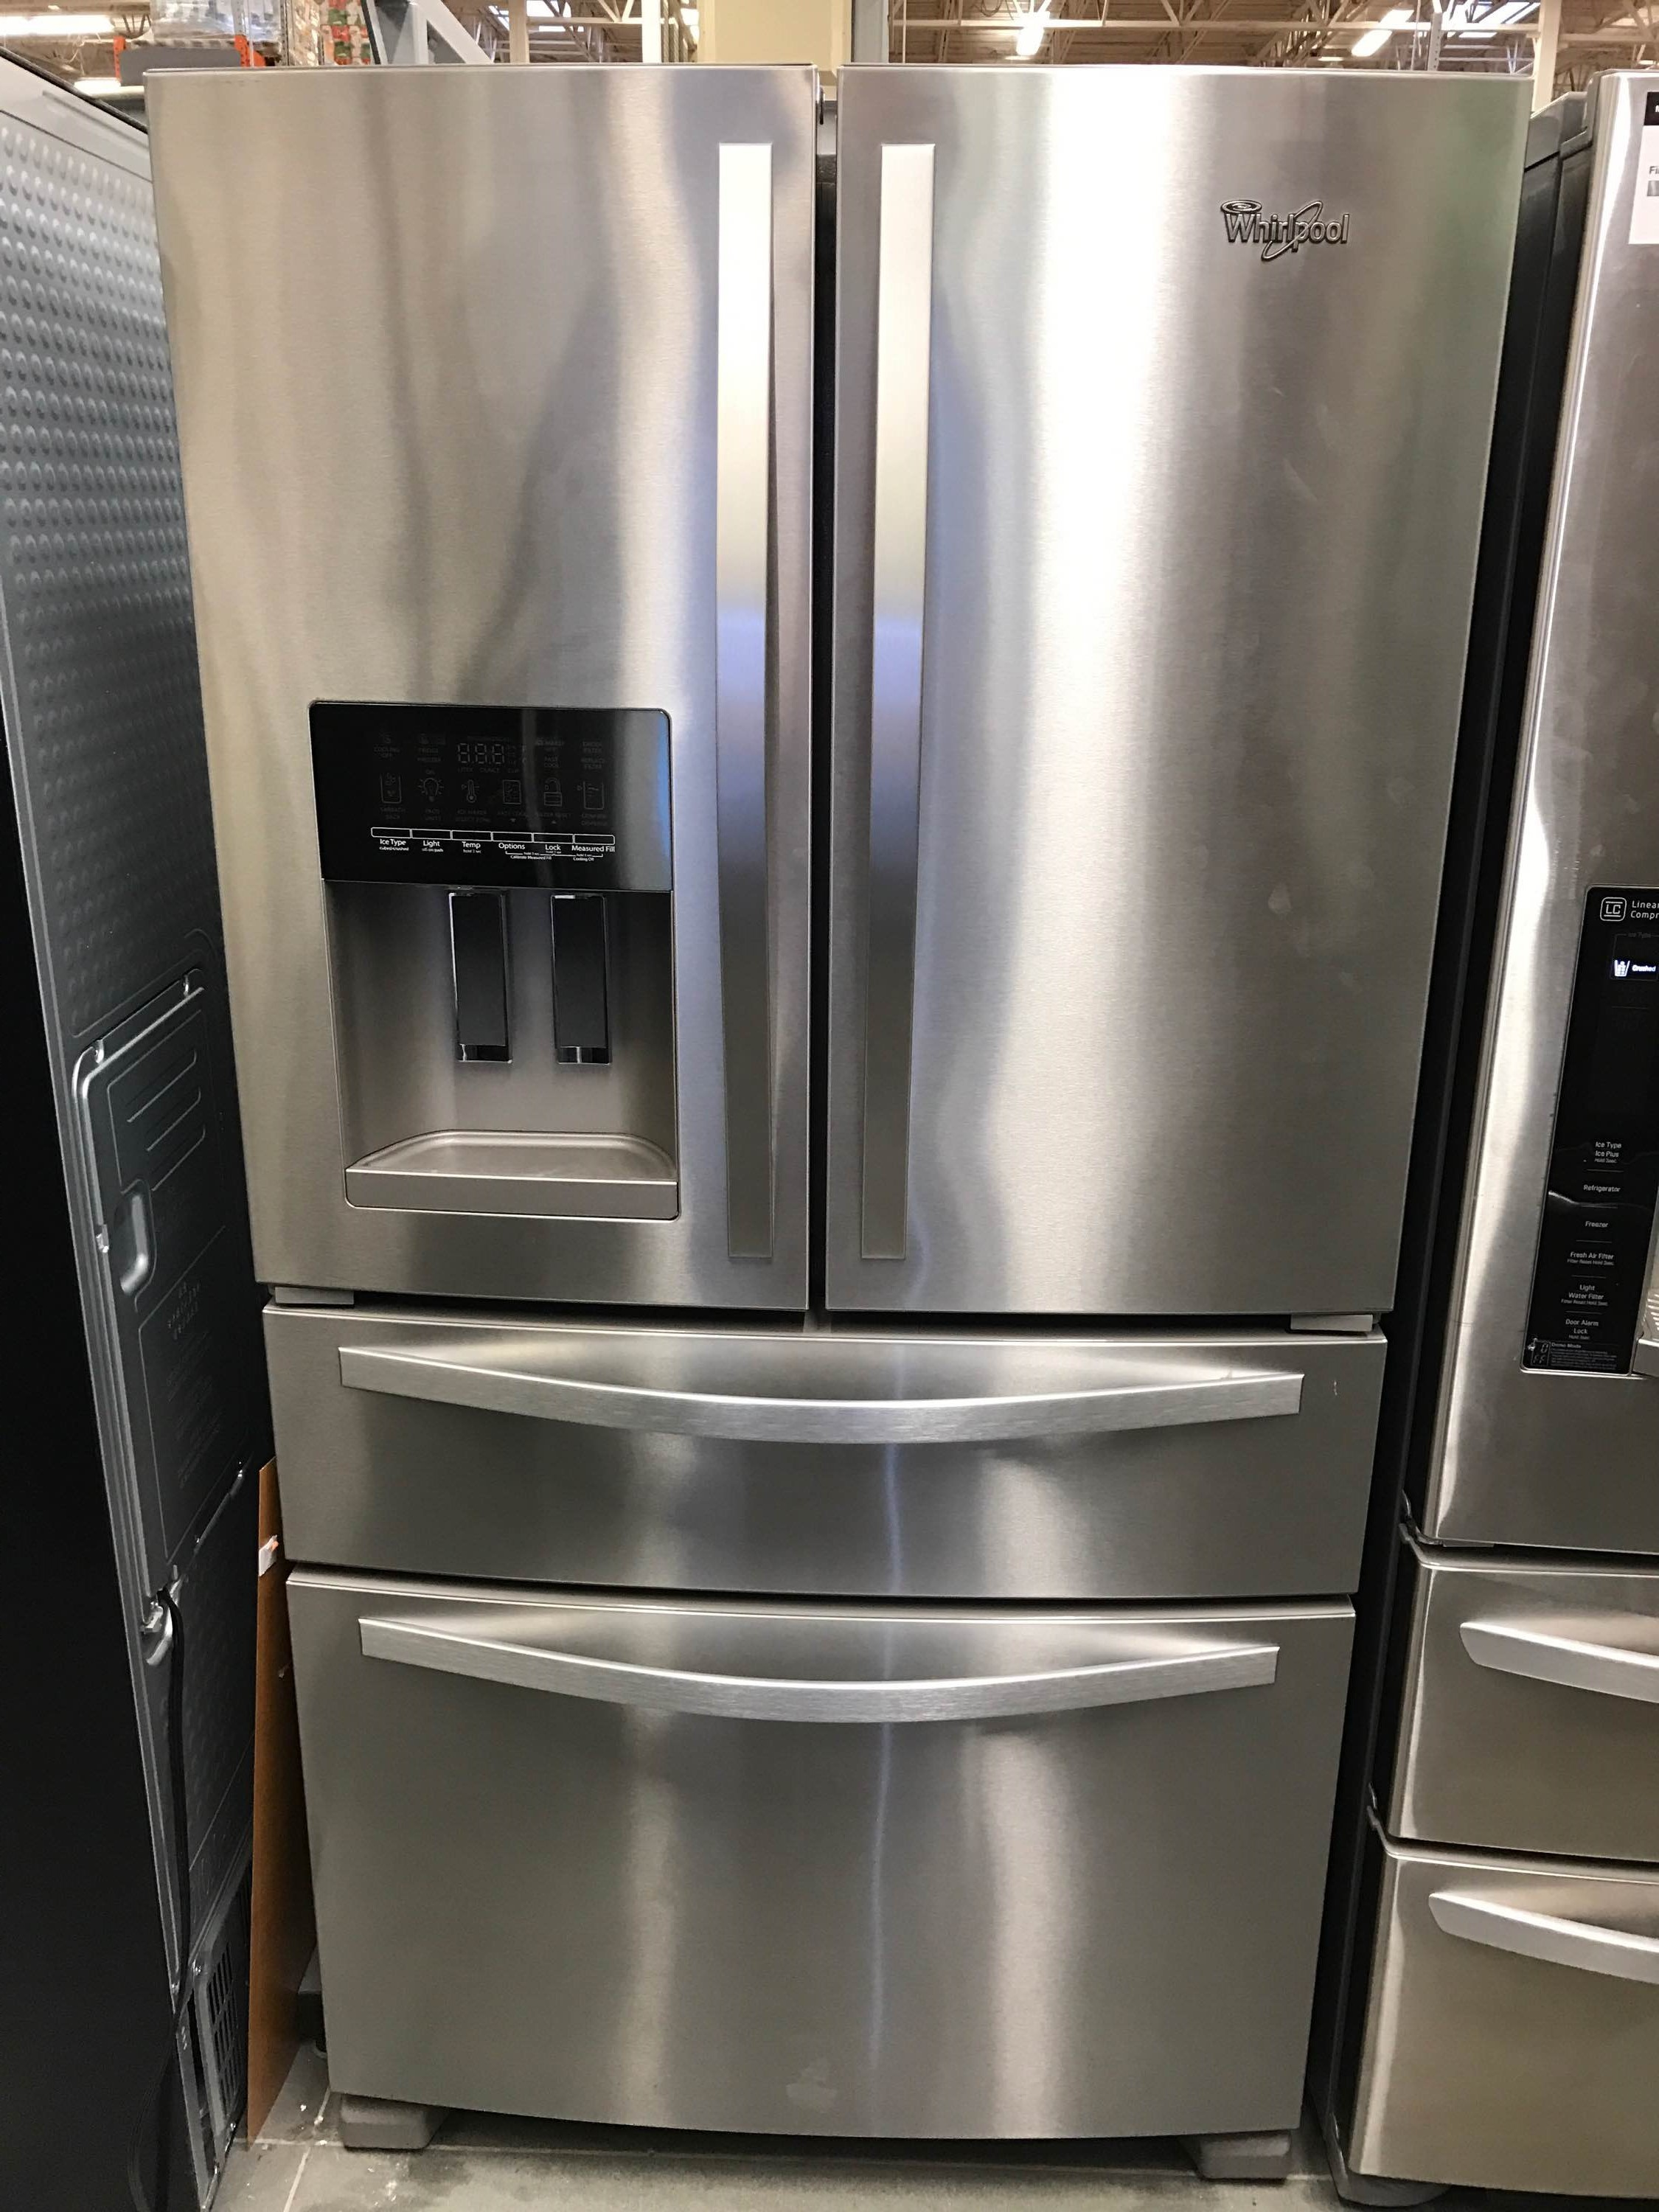 Whirlpool 36 inch wide french door refrigerator with - Whirlpool discount ...